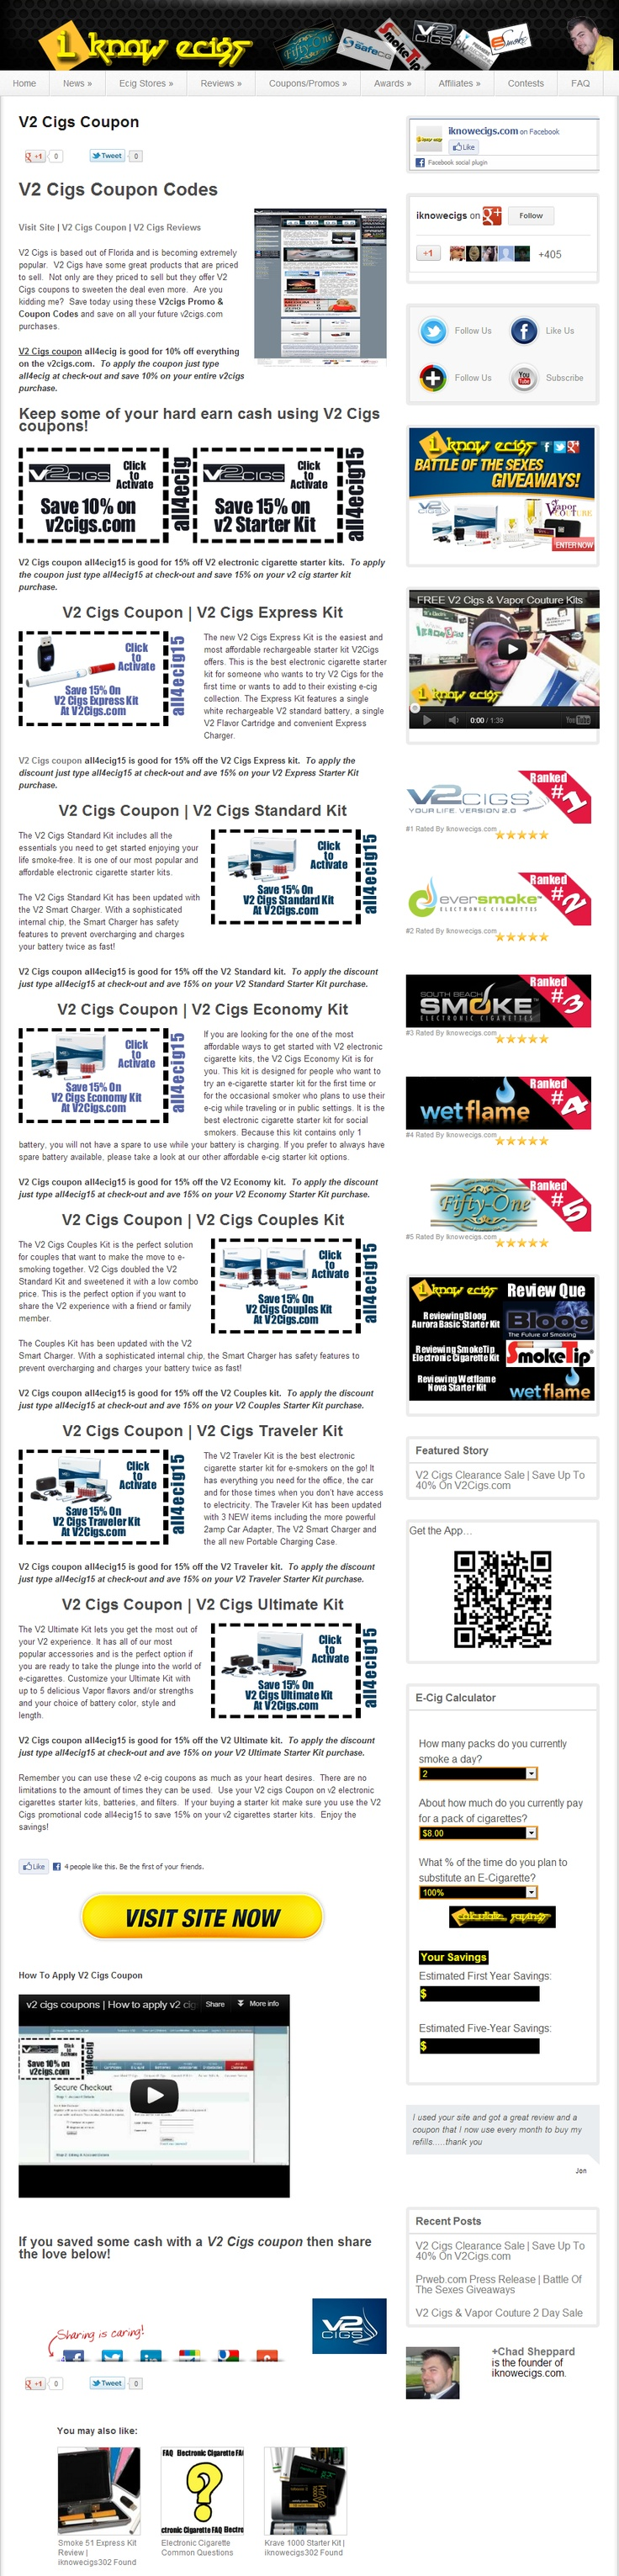 Best V2 Cigs Coupons >> V2 Cigs Coupon --> http://iknowecigs.com/electronic-cigarette-coupon-promo-codes-discounts-e-cigarette/v2cigs-coupon